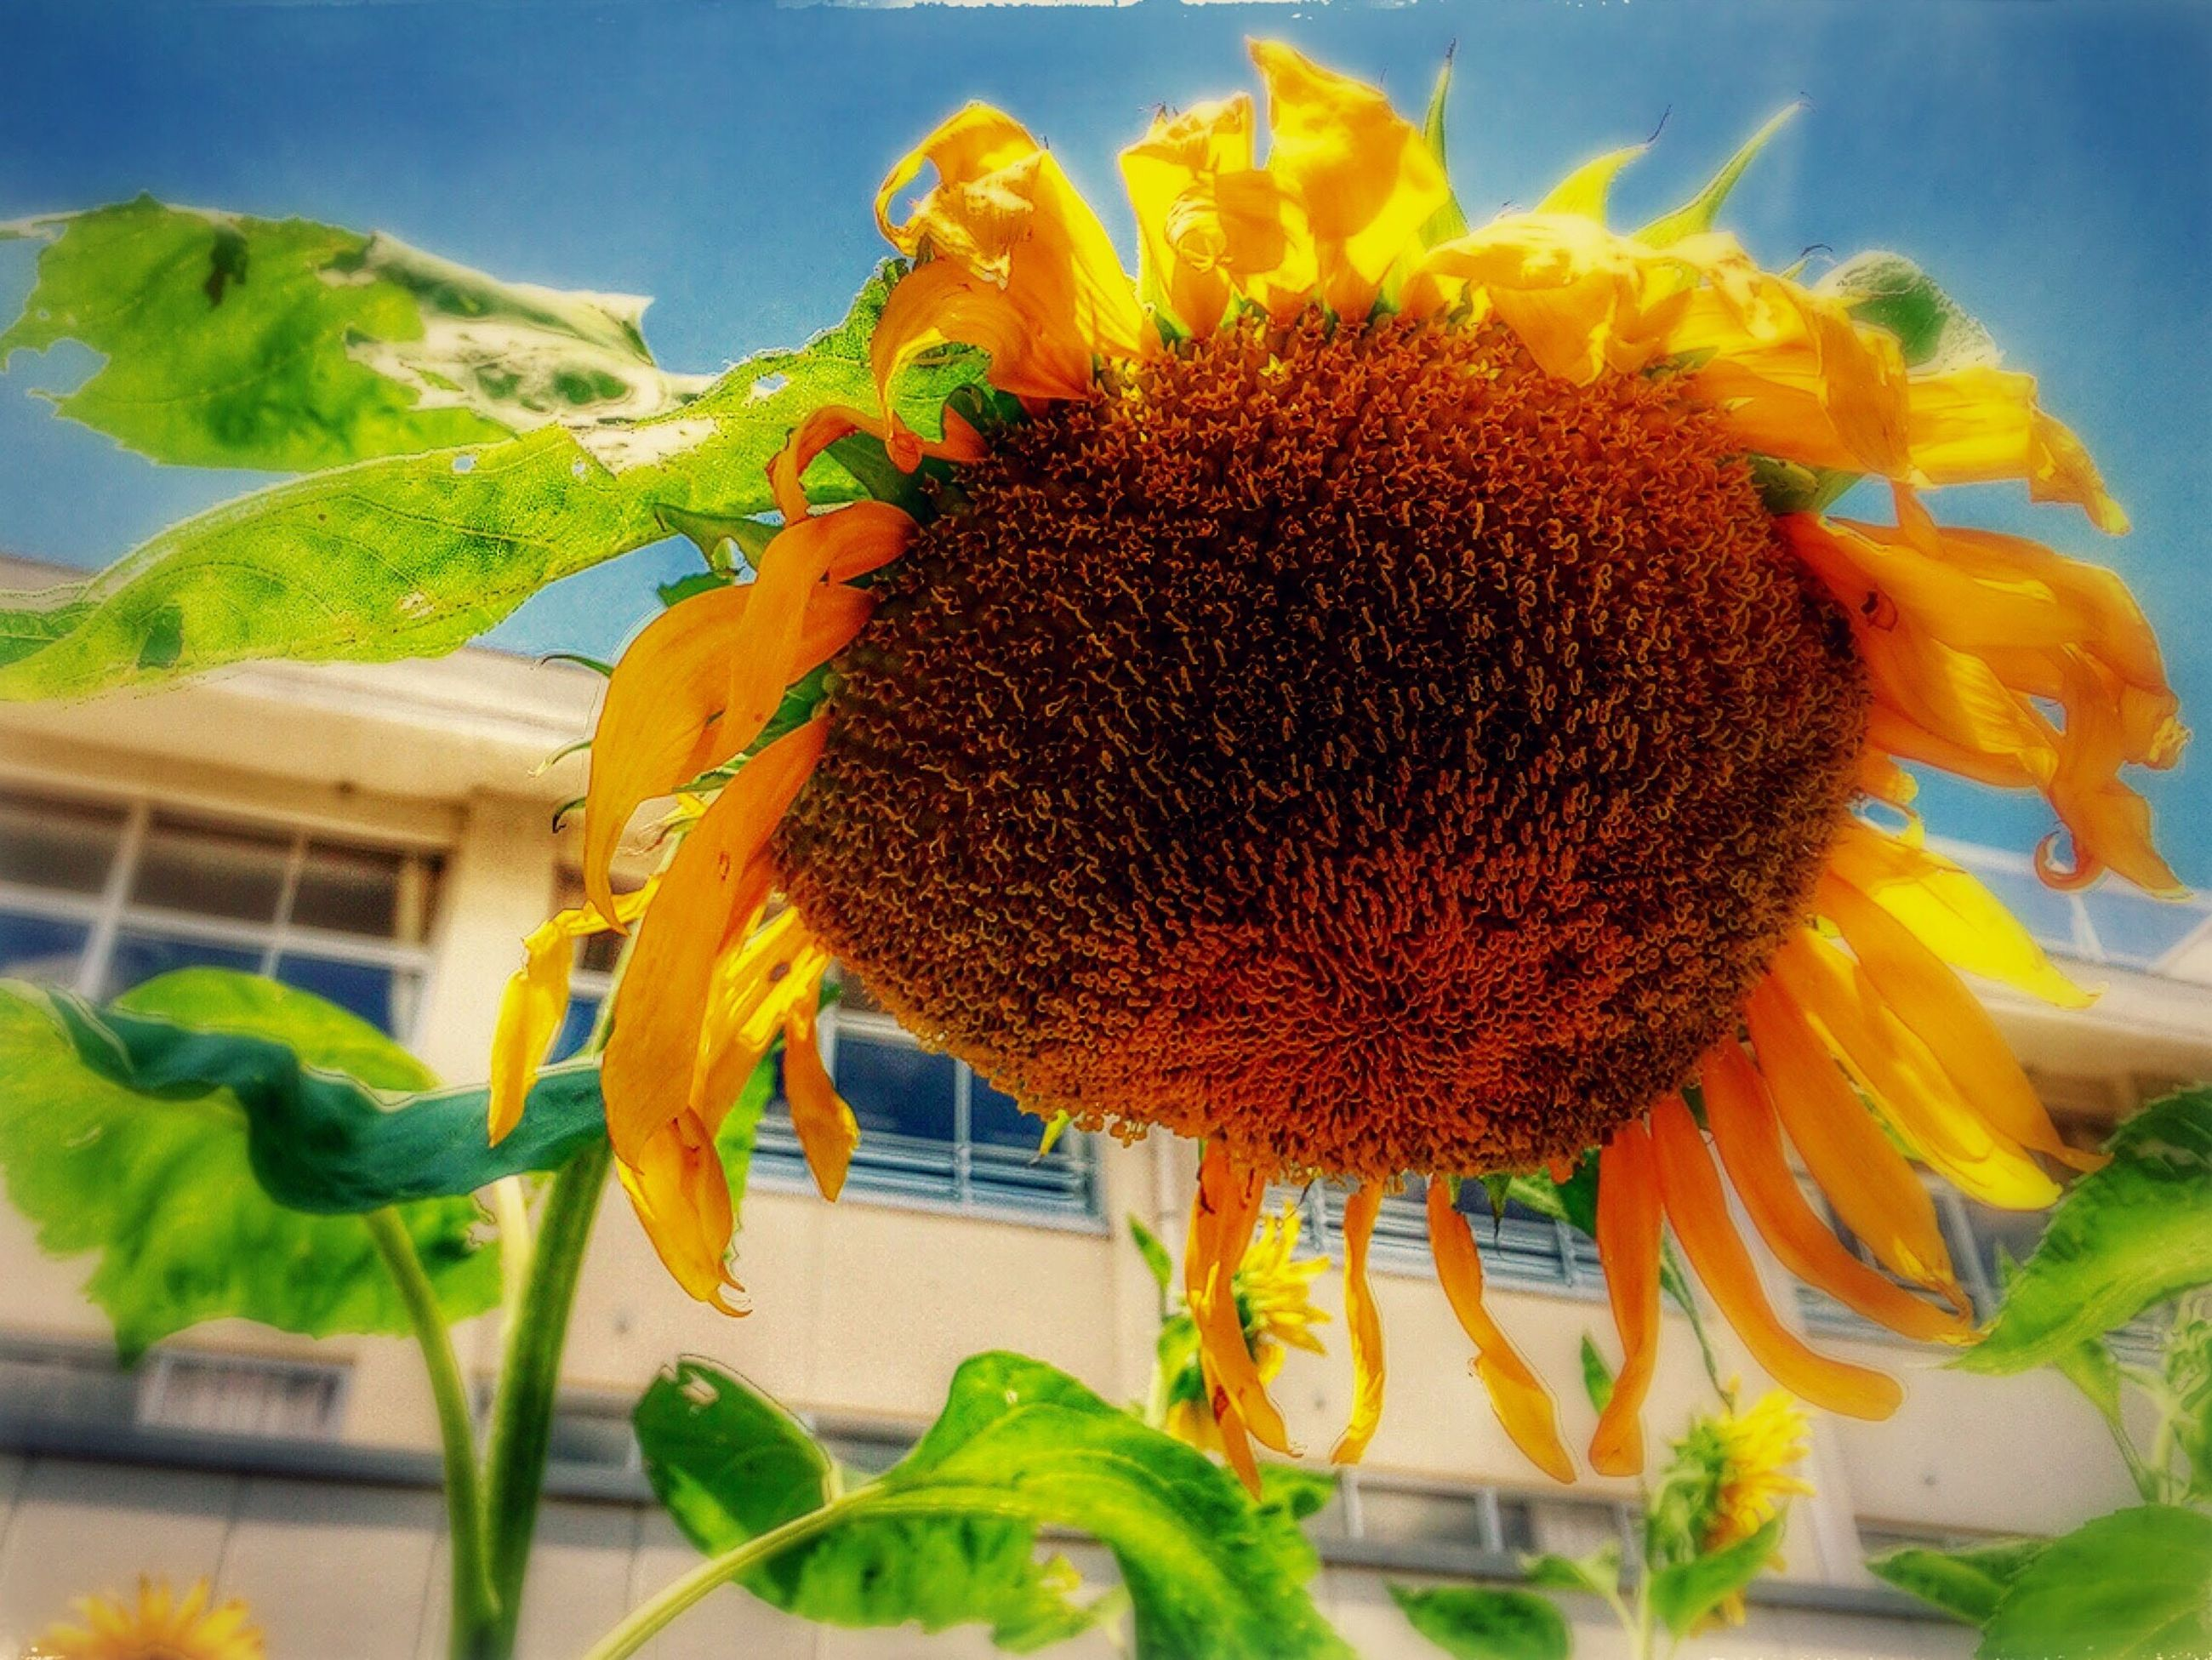 flower, fragility, freshness, growth, architecture, close-up, built structure, sunflower, yellow, petal, building exterior, plant, nature, flower head, in bloom, growing, houseplant, blossom, beauty in nature, focus on foreground, green color, day, vibrant color, springtime, softness